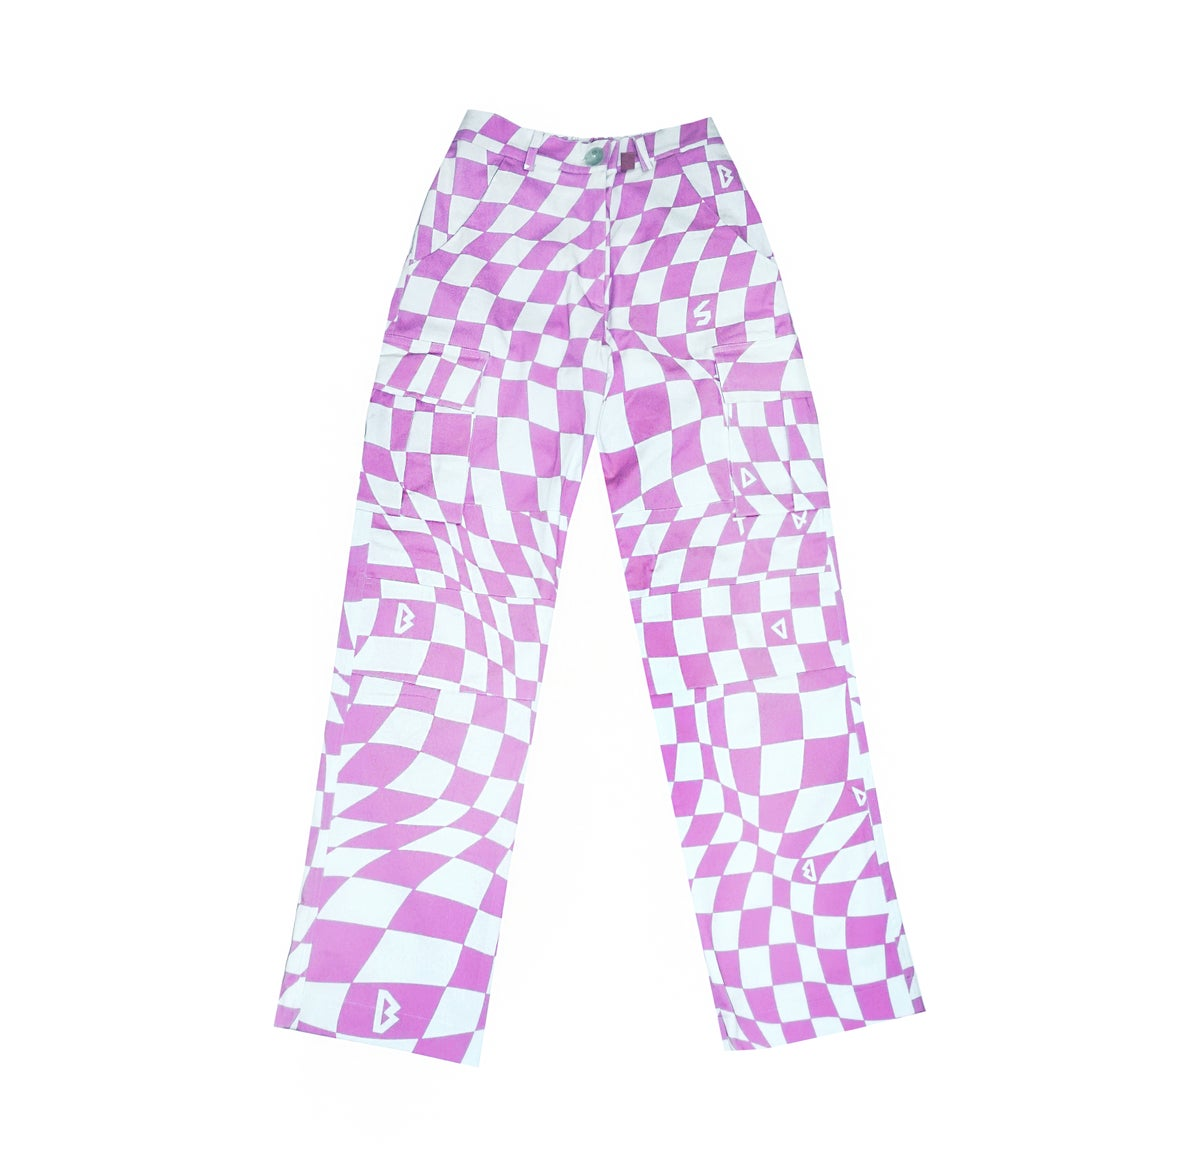 Image of Checkmate Cargo Pants